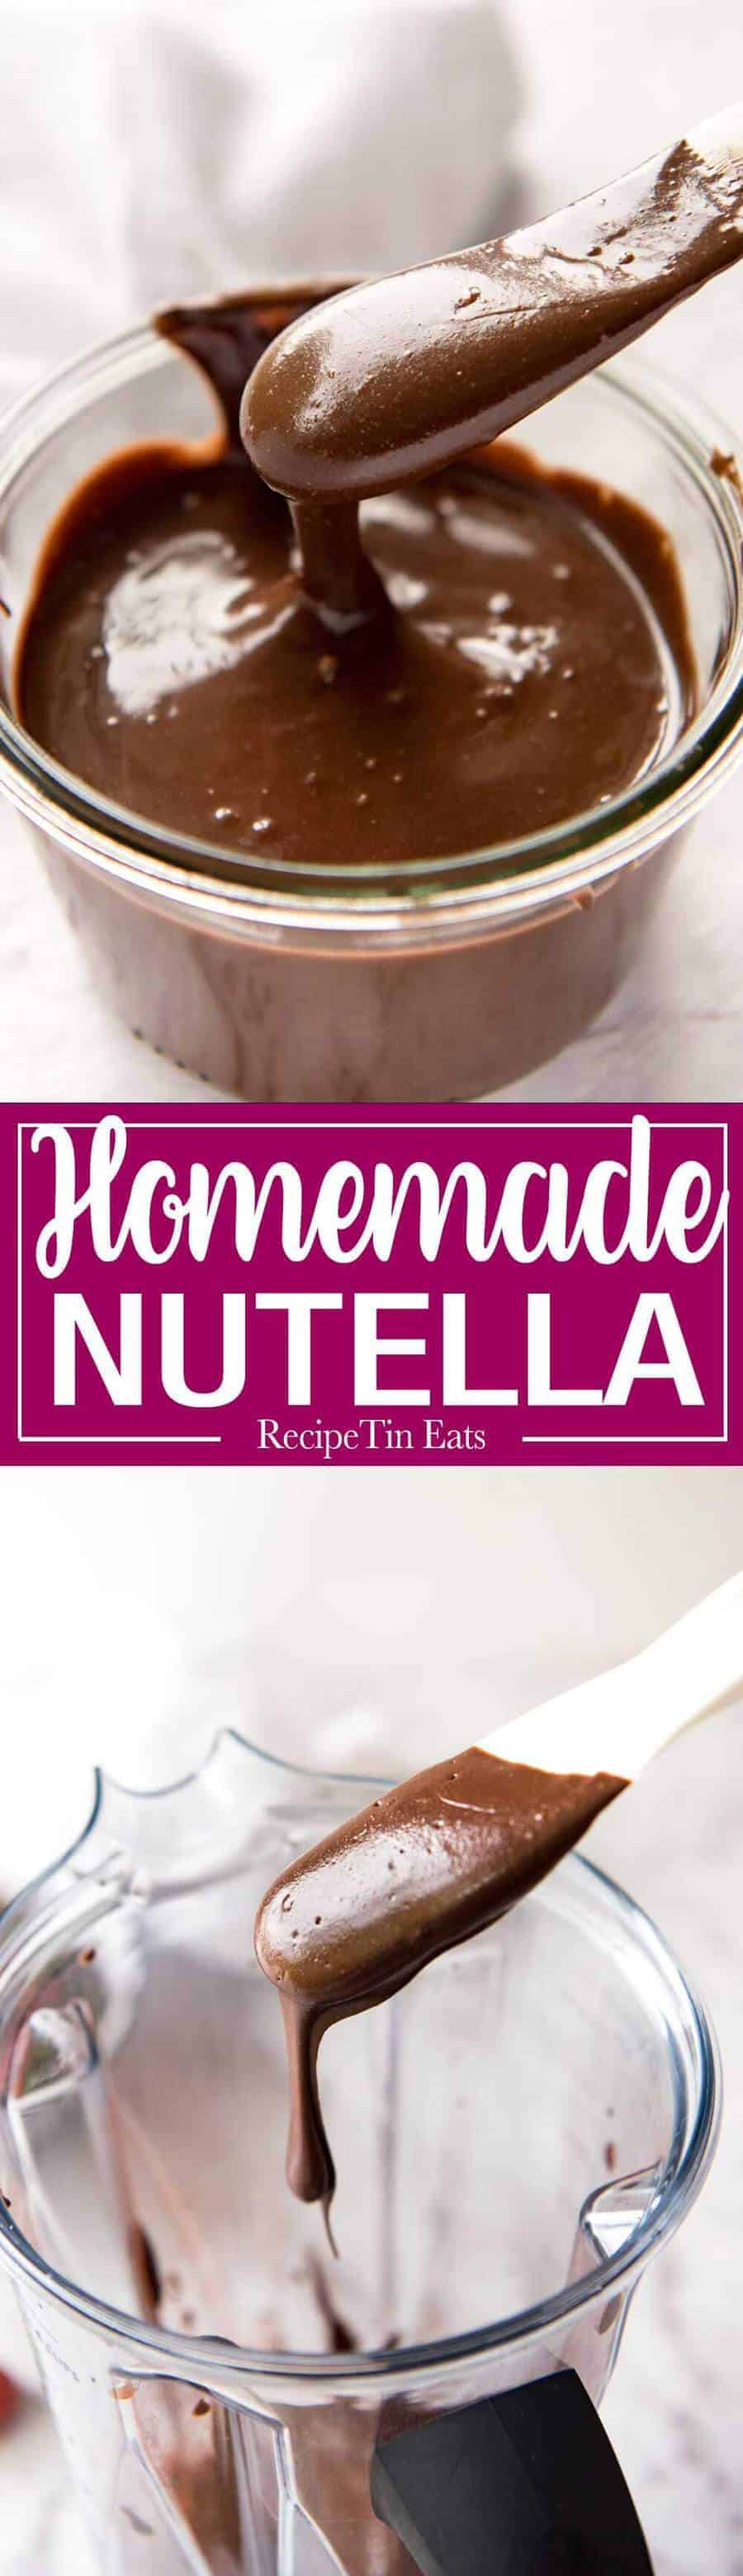 Homemade Nutella - Just hazelnuts, cocoa powder, confectionary / icing sugar, oil, vanilla and your blender is all you need to make an incredible blender at home! recipetineats.com